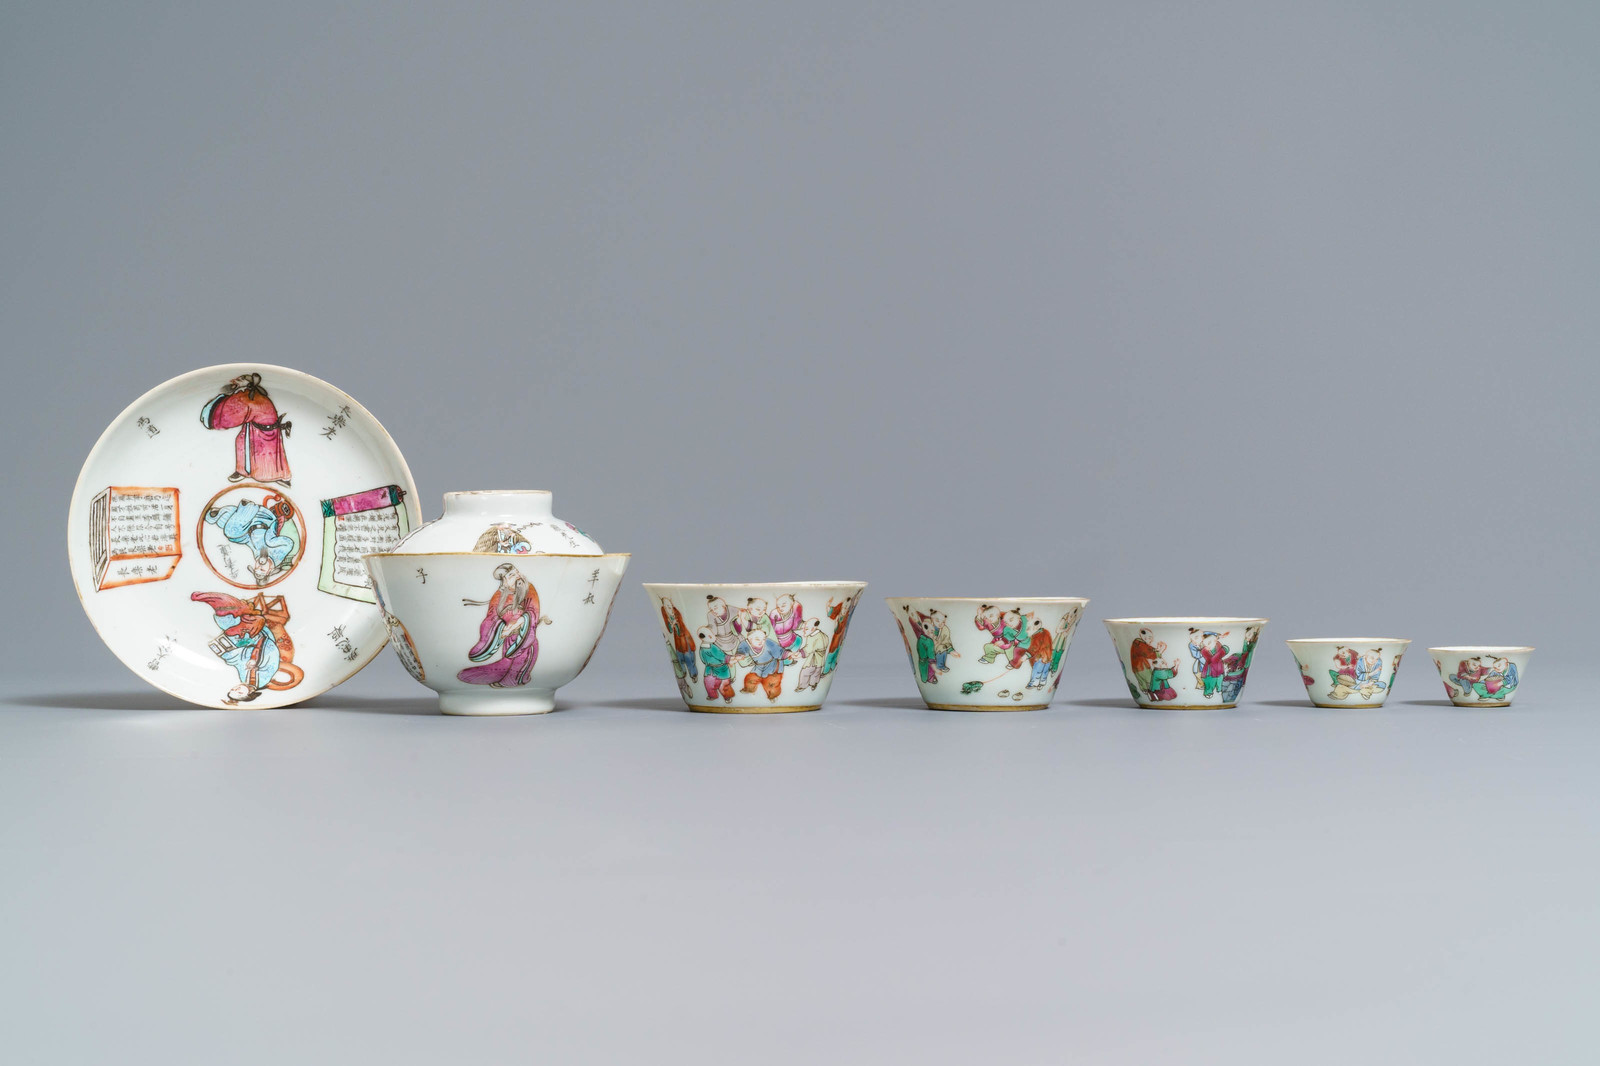 Lot 42 - Five Chinese famille rose nesting cups and a Wu Shuang Pu cup and saucer, 19th C.